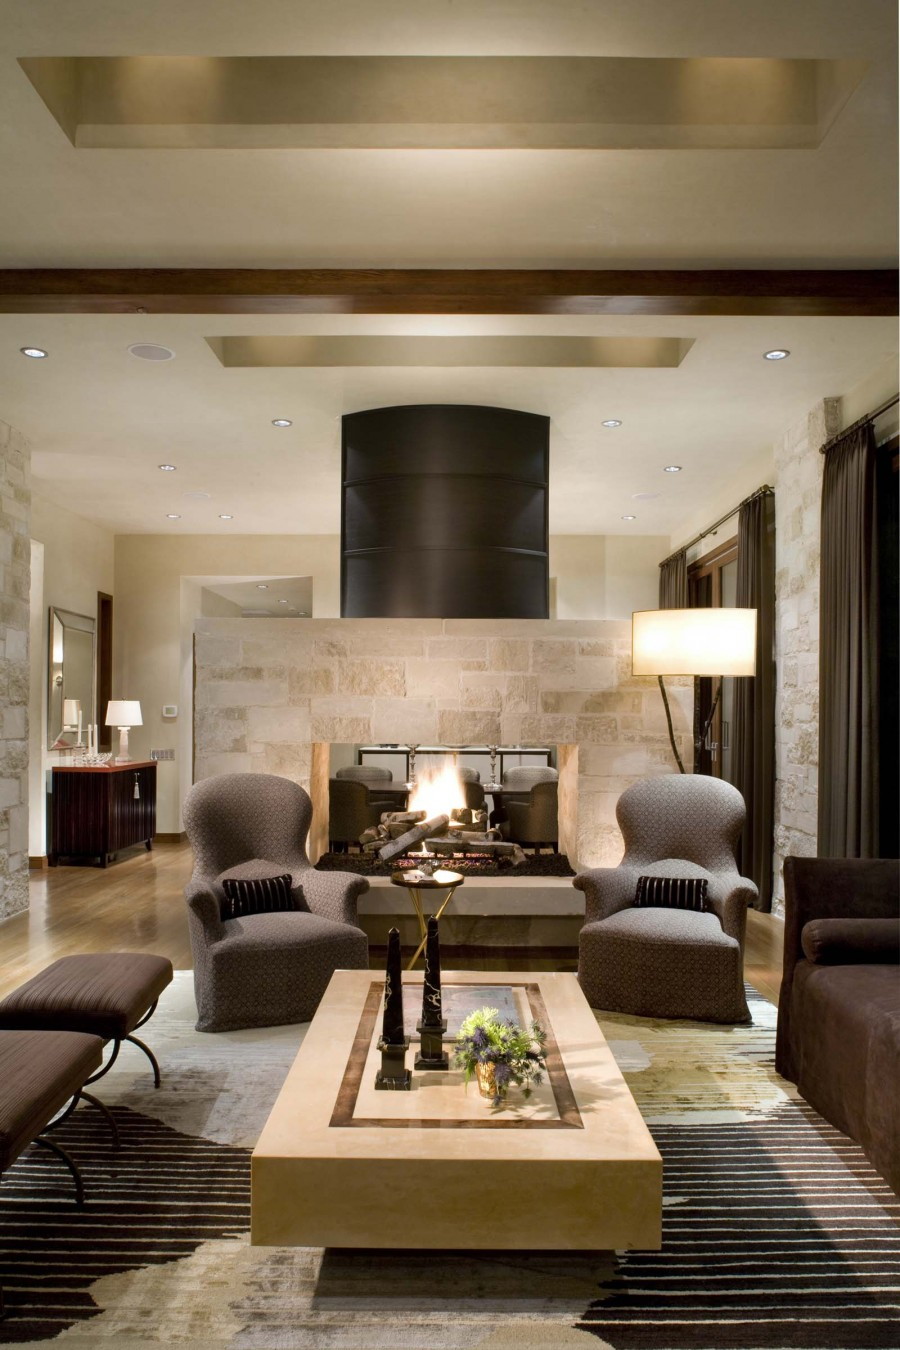 16 fabulous earth tones living room designs decoholic for House living room interior design